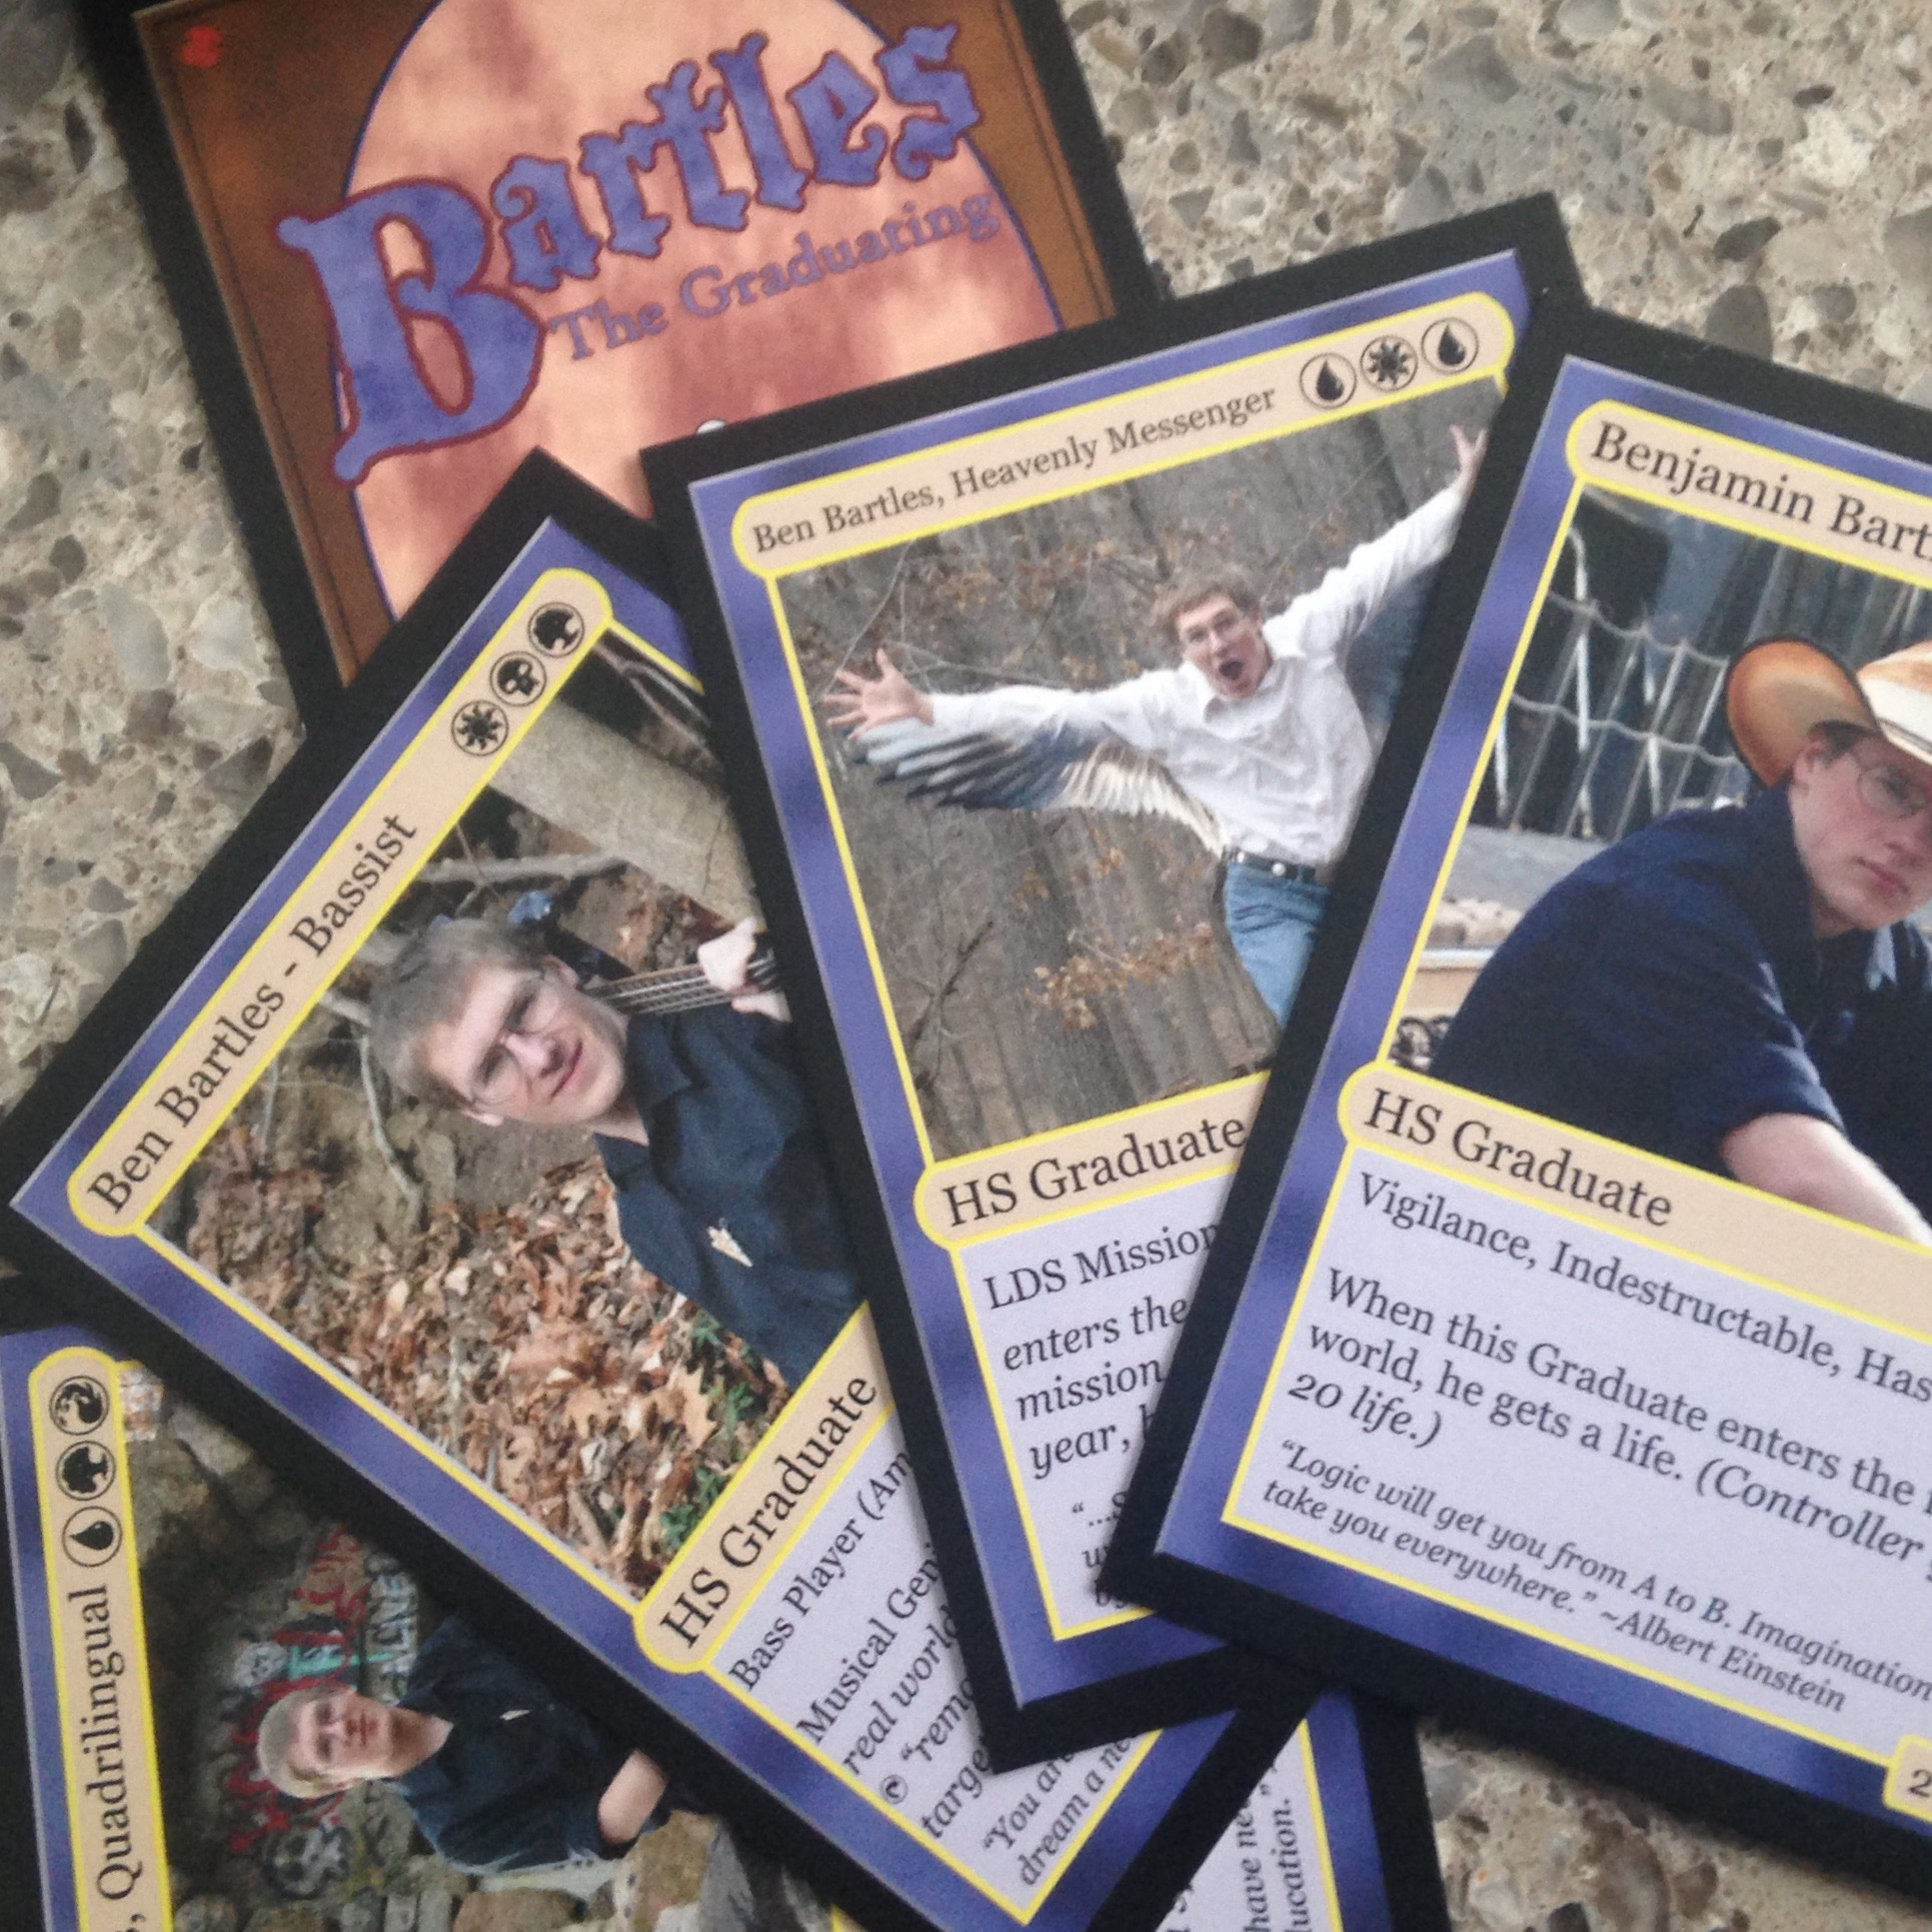 Bartles the Graduating - Spoof on Magic the Gathering cards